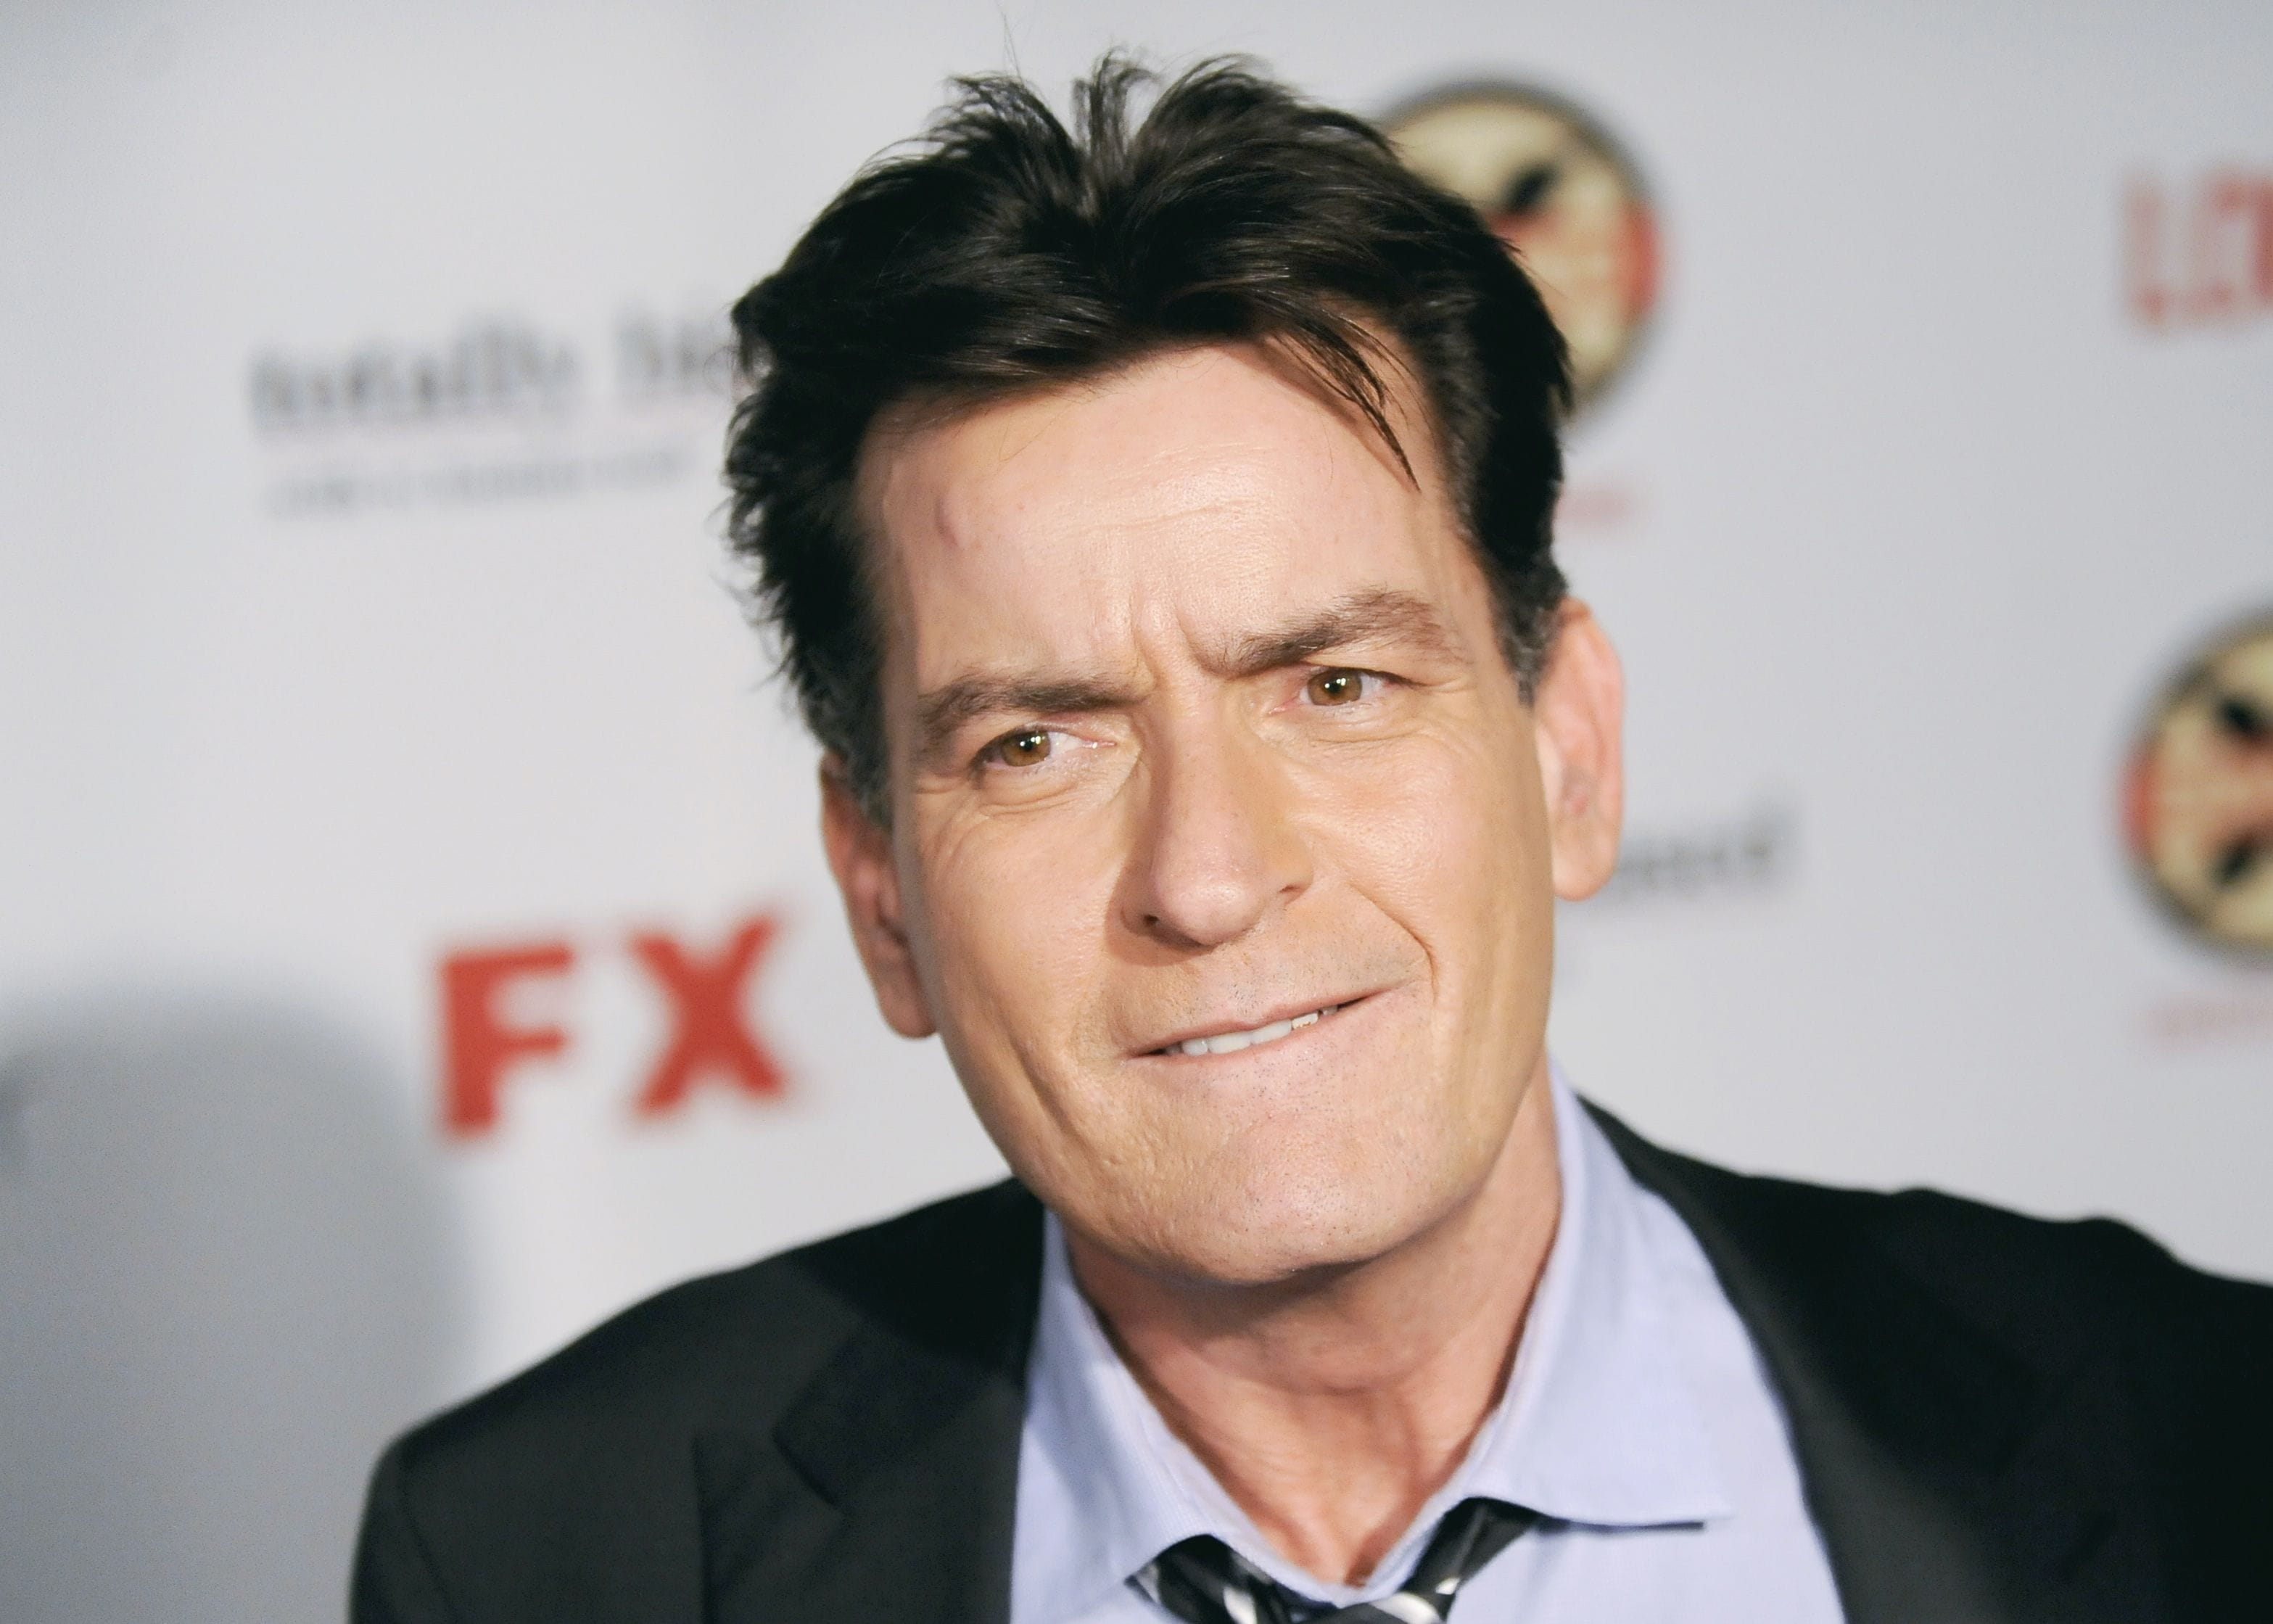 Charlie Sheen HQ wallpapers